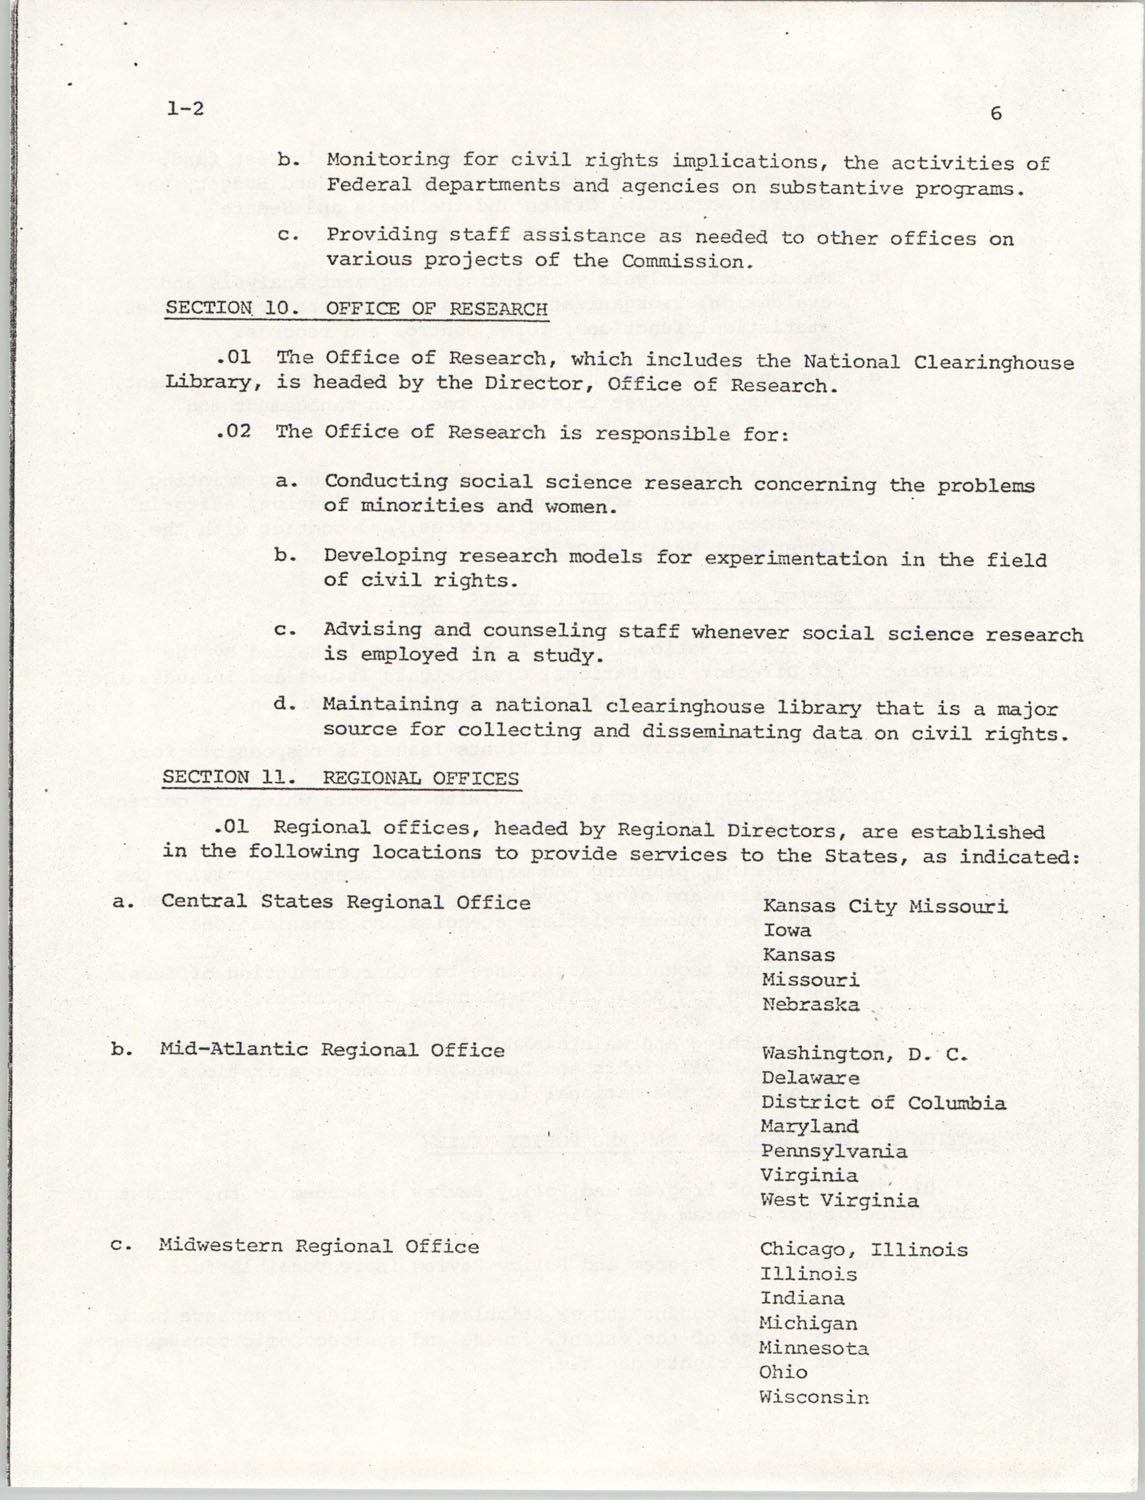 Administrative Manual Instruction 1-2, Organization of the U.S. Commission on Civil Rights, Page 6